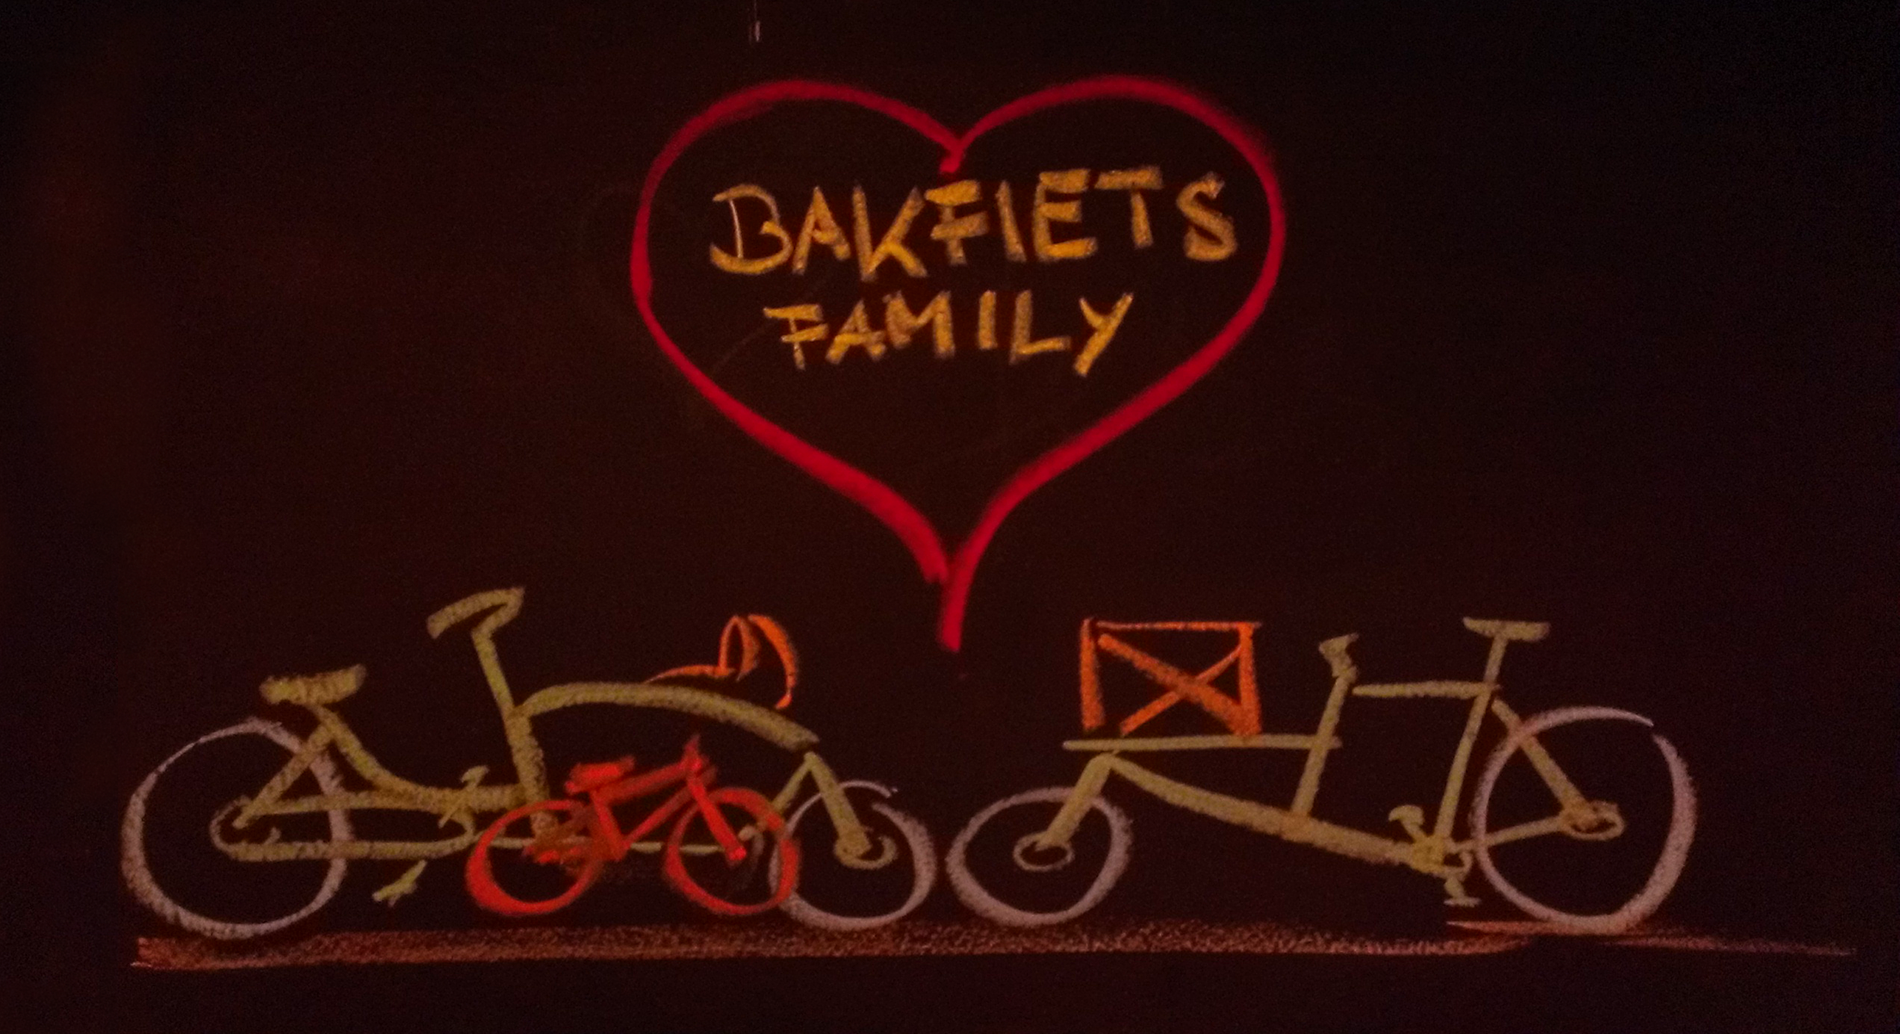 bakfiets family